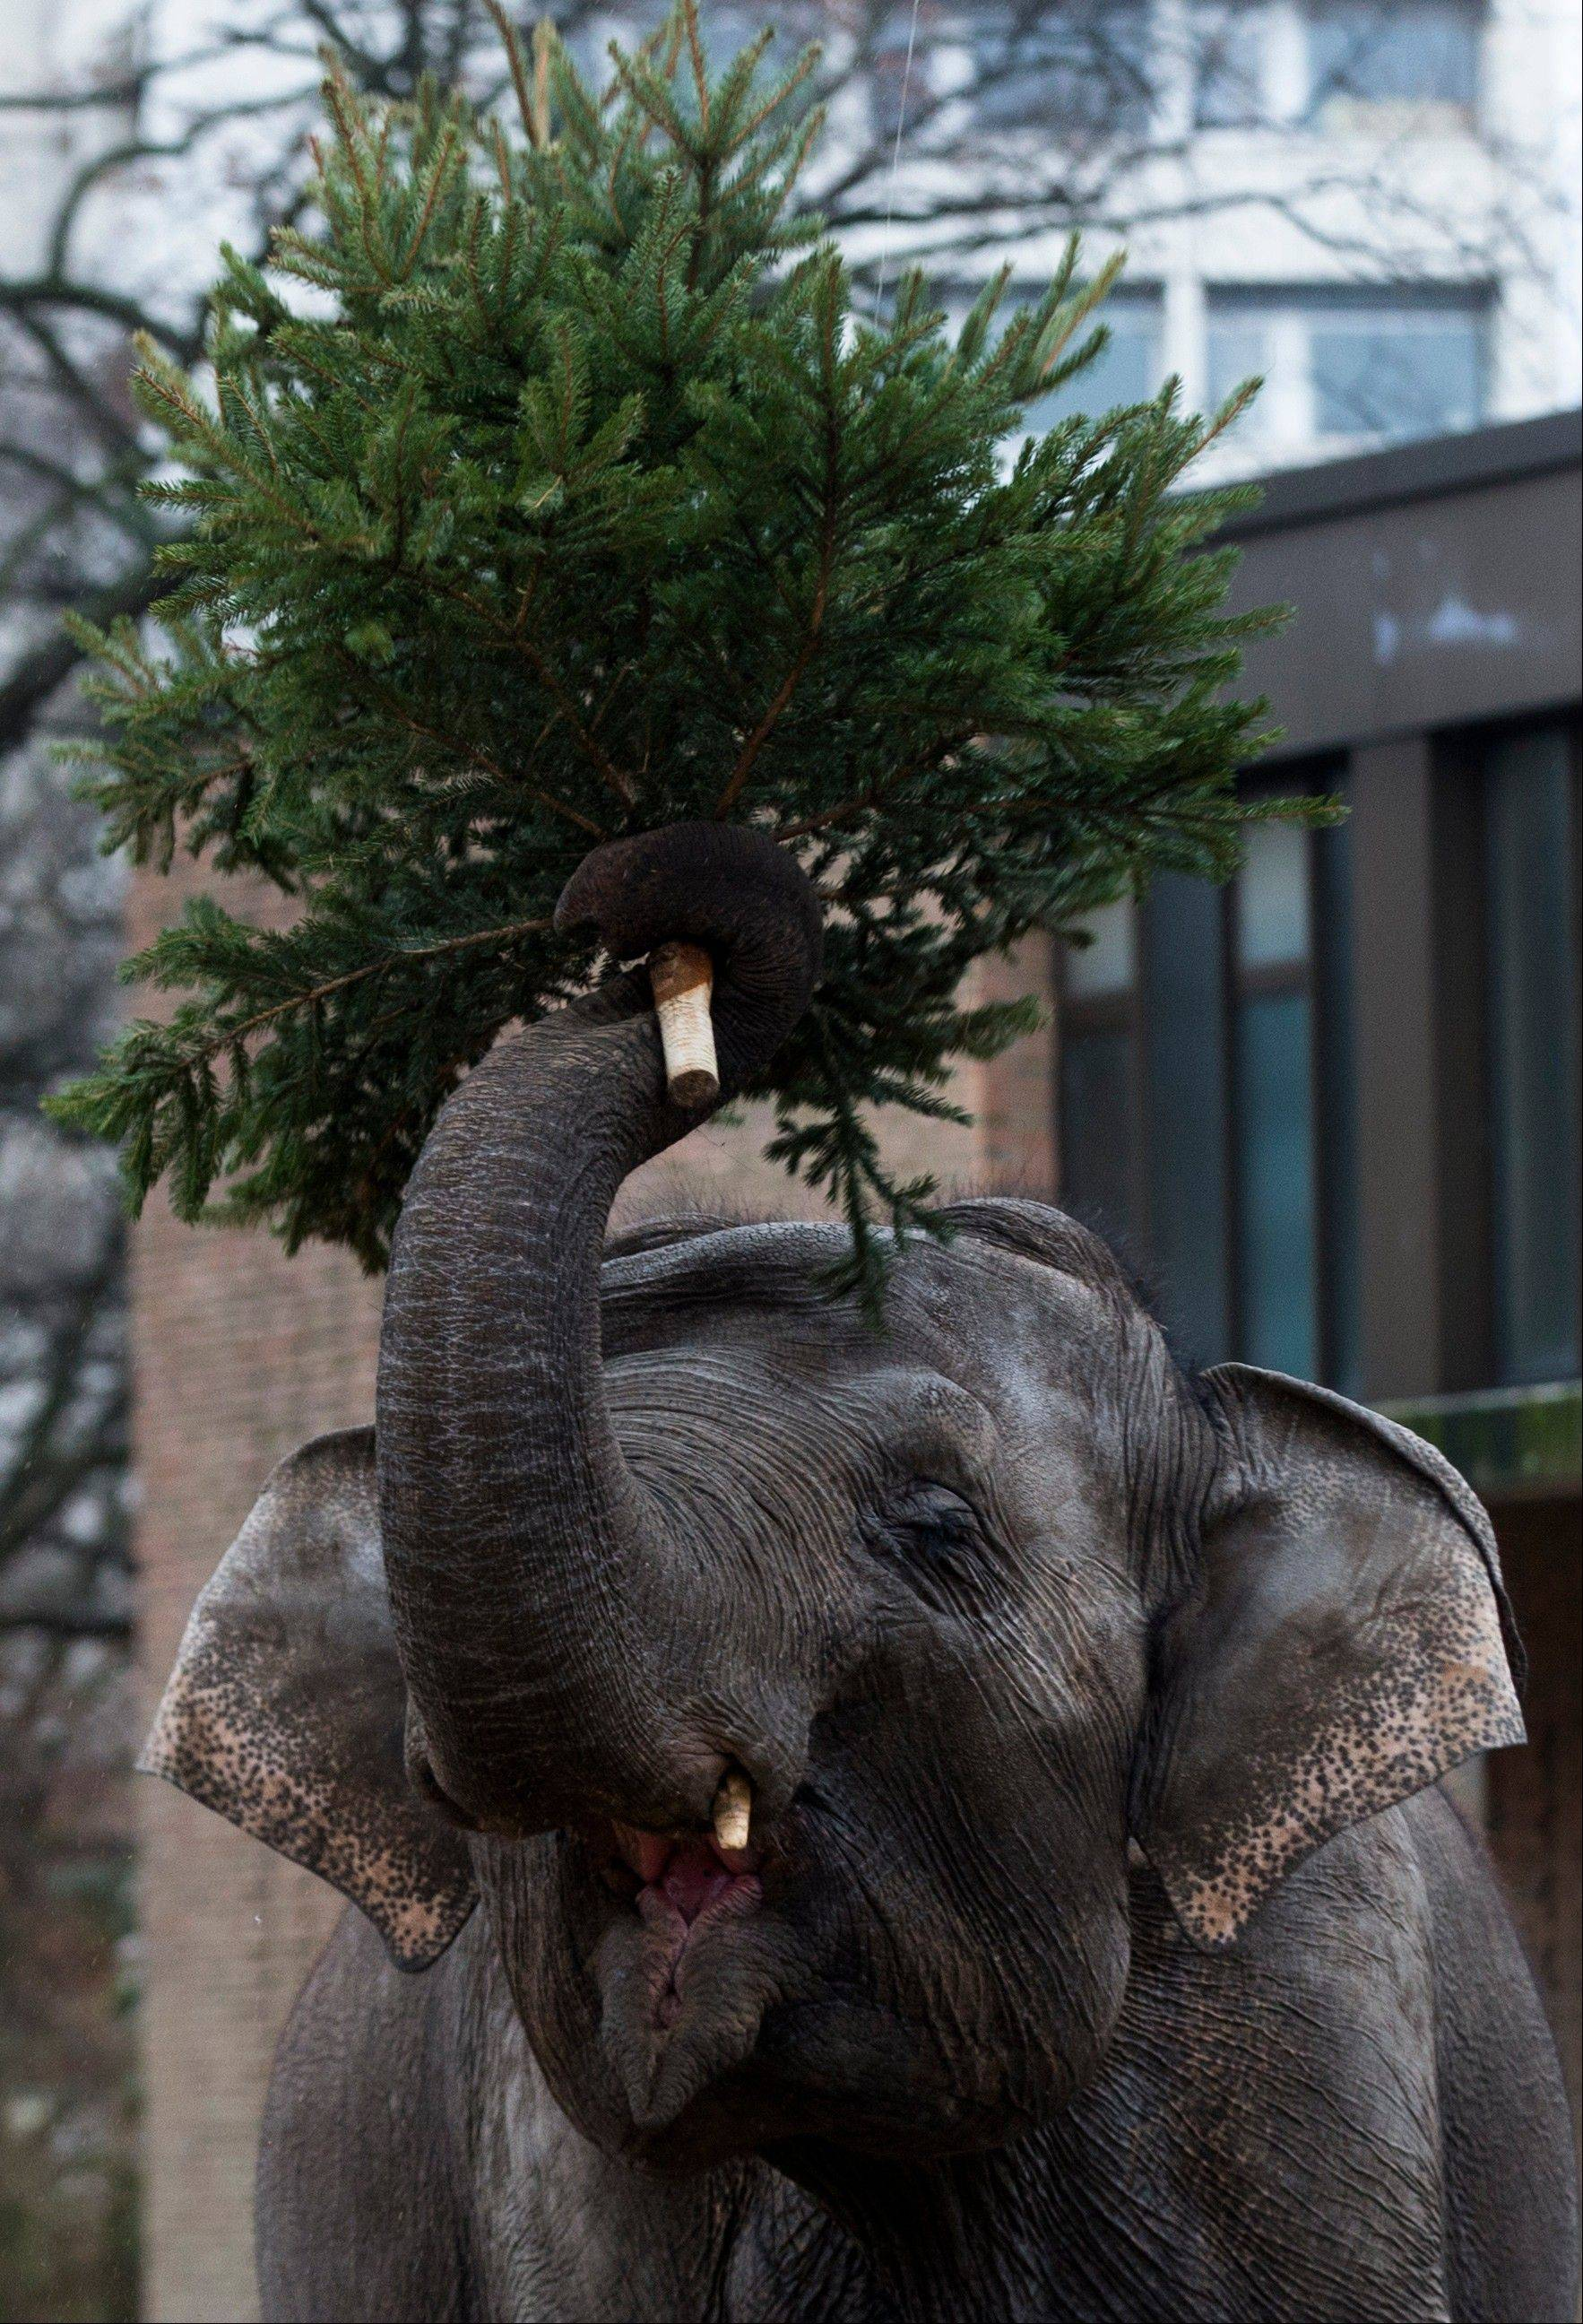 An elephant plays around with a Christmas tree Friday at the Berlin Zoo before eating it.